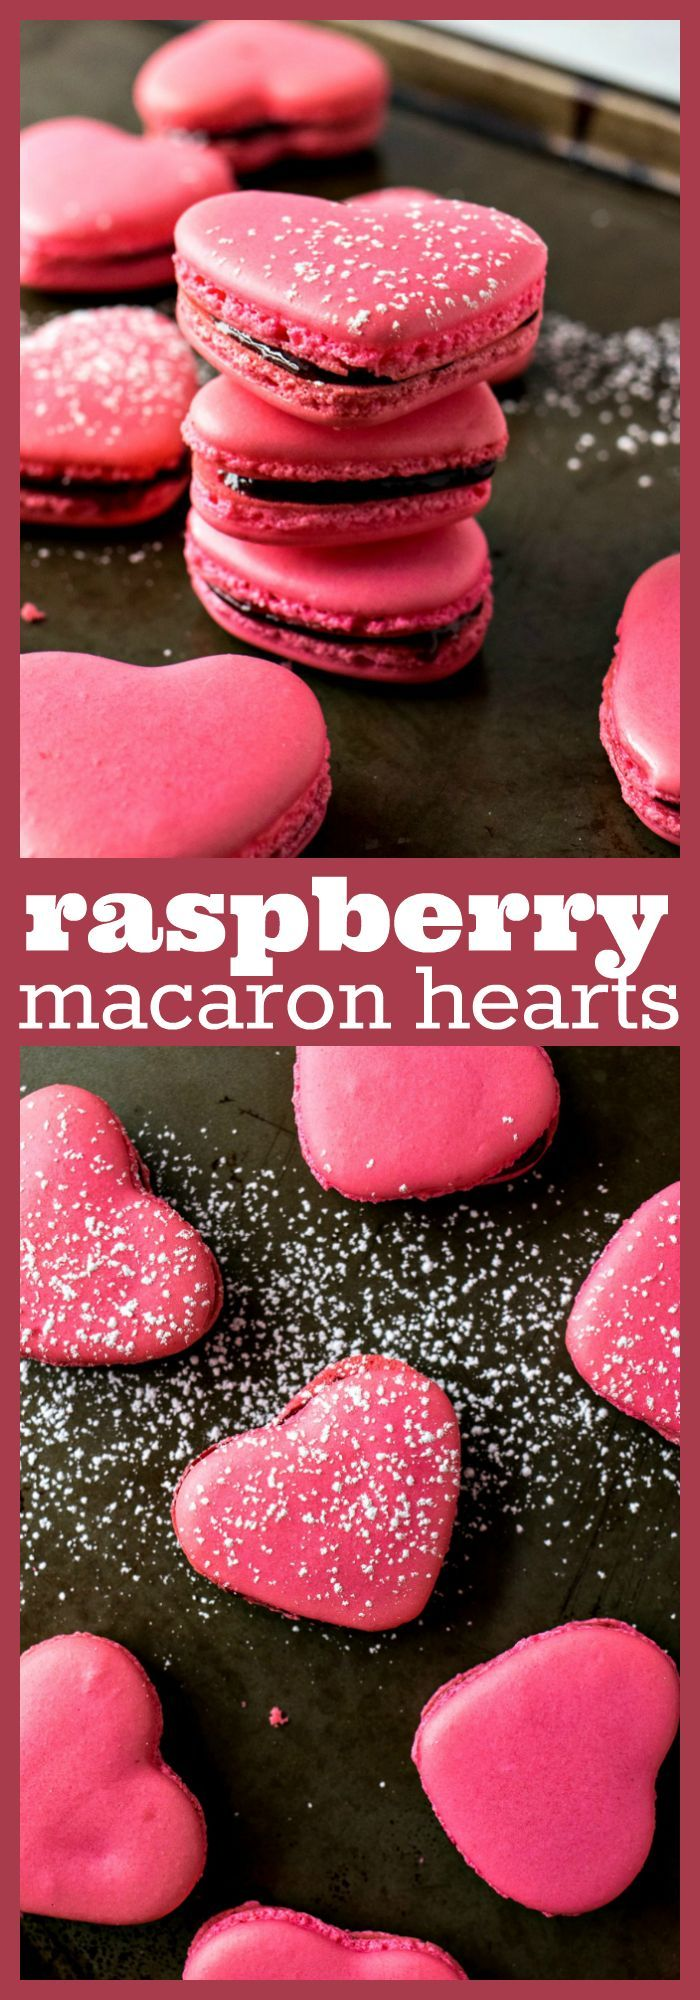 Raspberry Macaron Hearts – Classic french raspberry macarons are given a Valentine's Day makeover by shaping them into lovely hearts. Perfect to share with the one you love! #recipe #valentinesday #macarons #hearts #raspberry #cookies